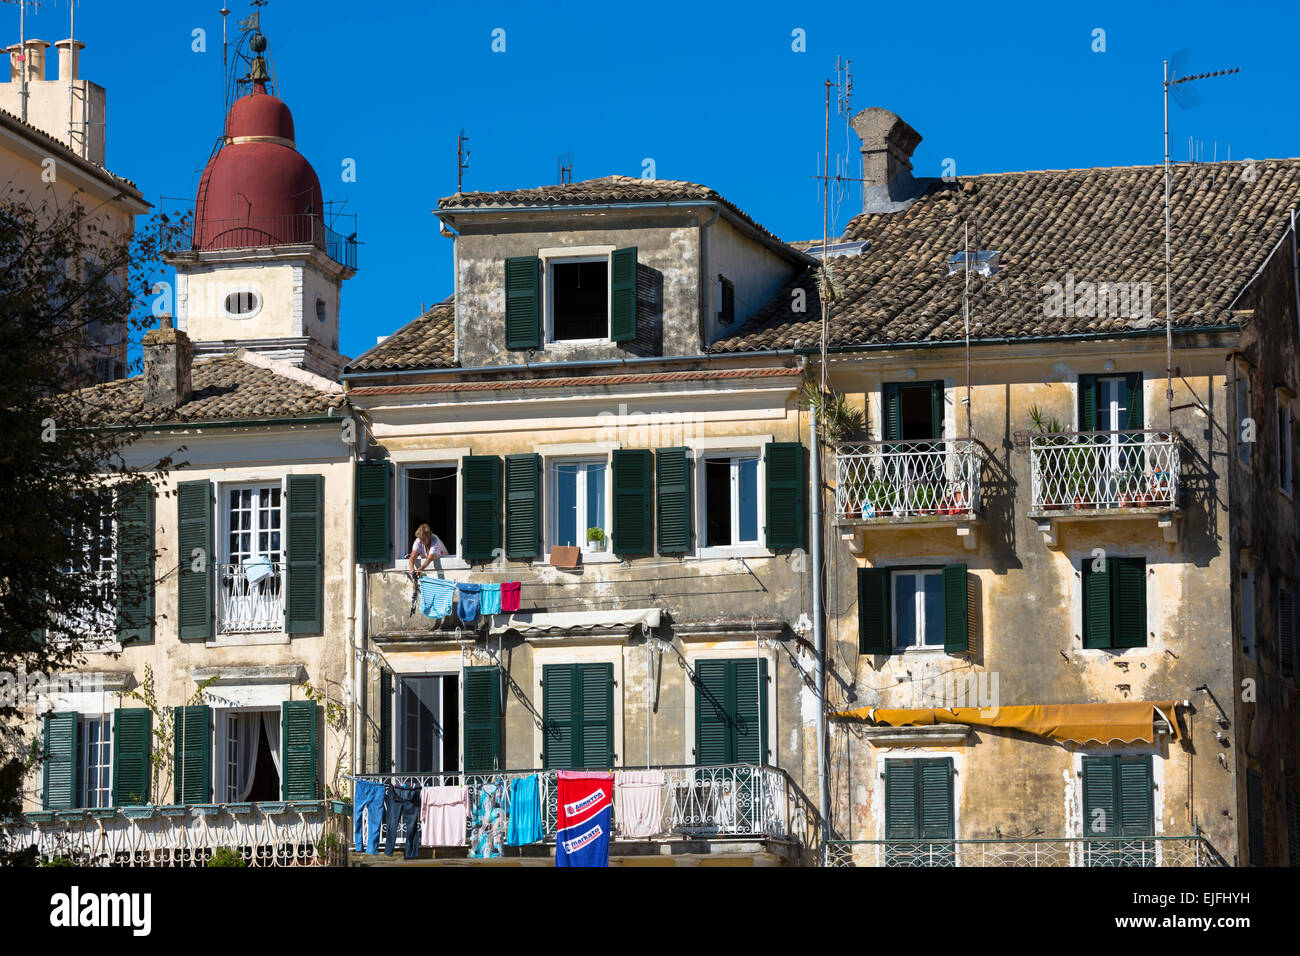 Greek woman hanging out washing on line from window of traditional apartment in Kerkyra, Corfu Town, Greece - Stock Image